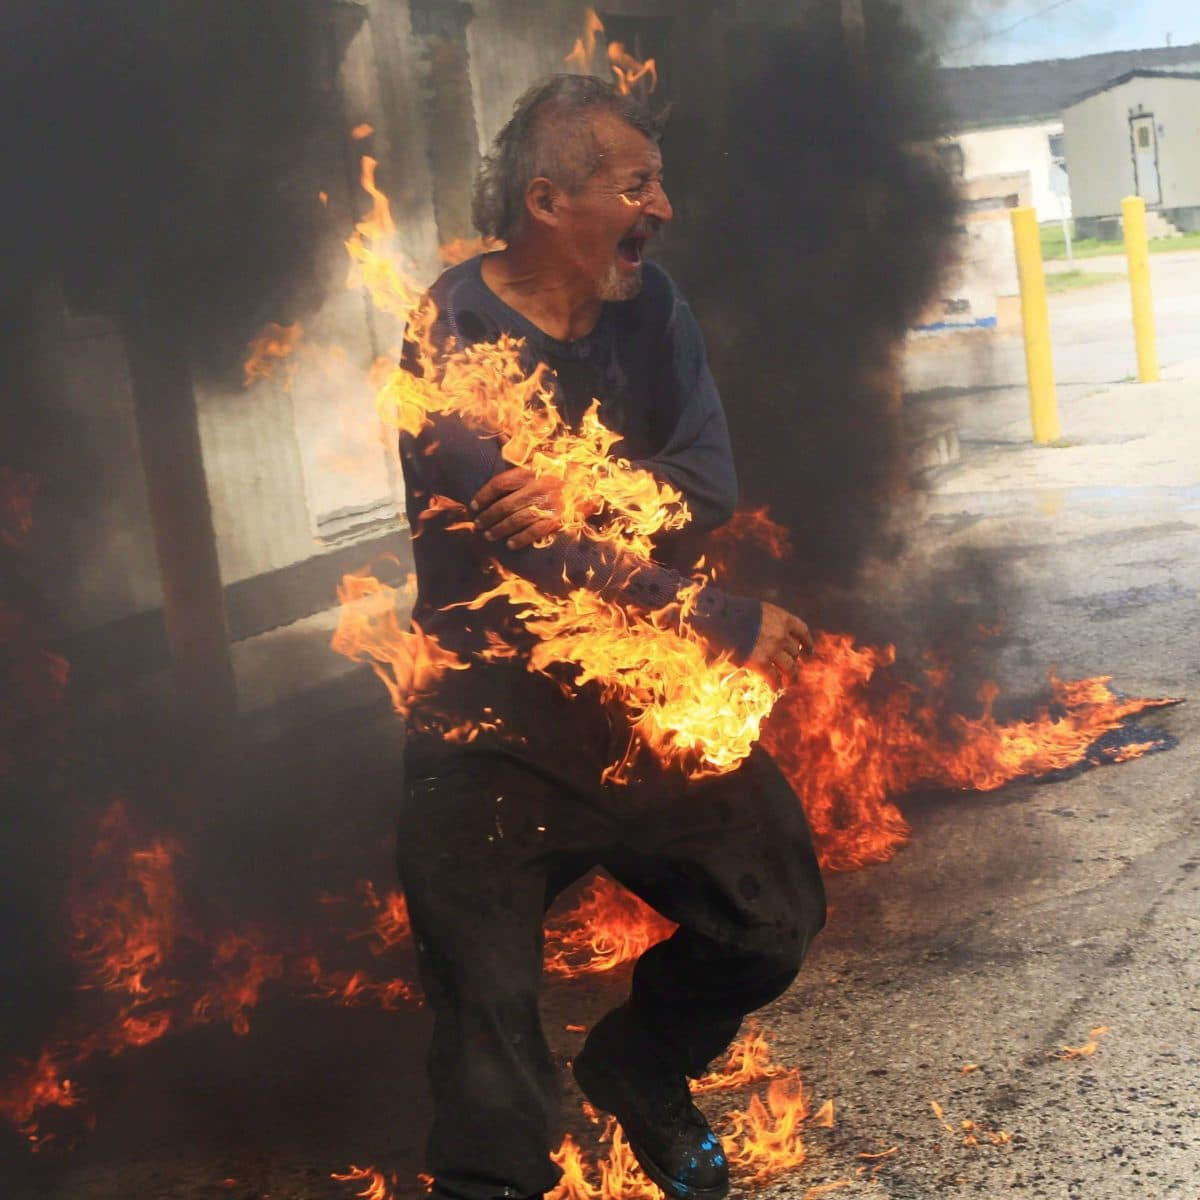 Protester engulfed in flames after attempting to pour gas on a fire..